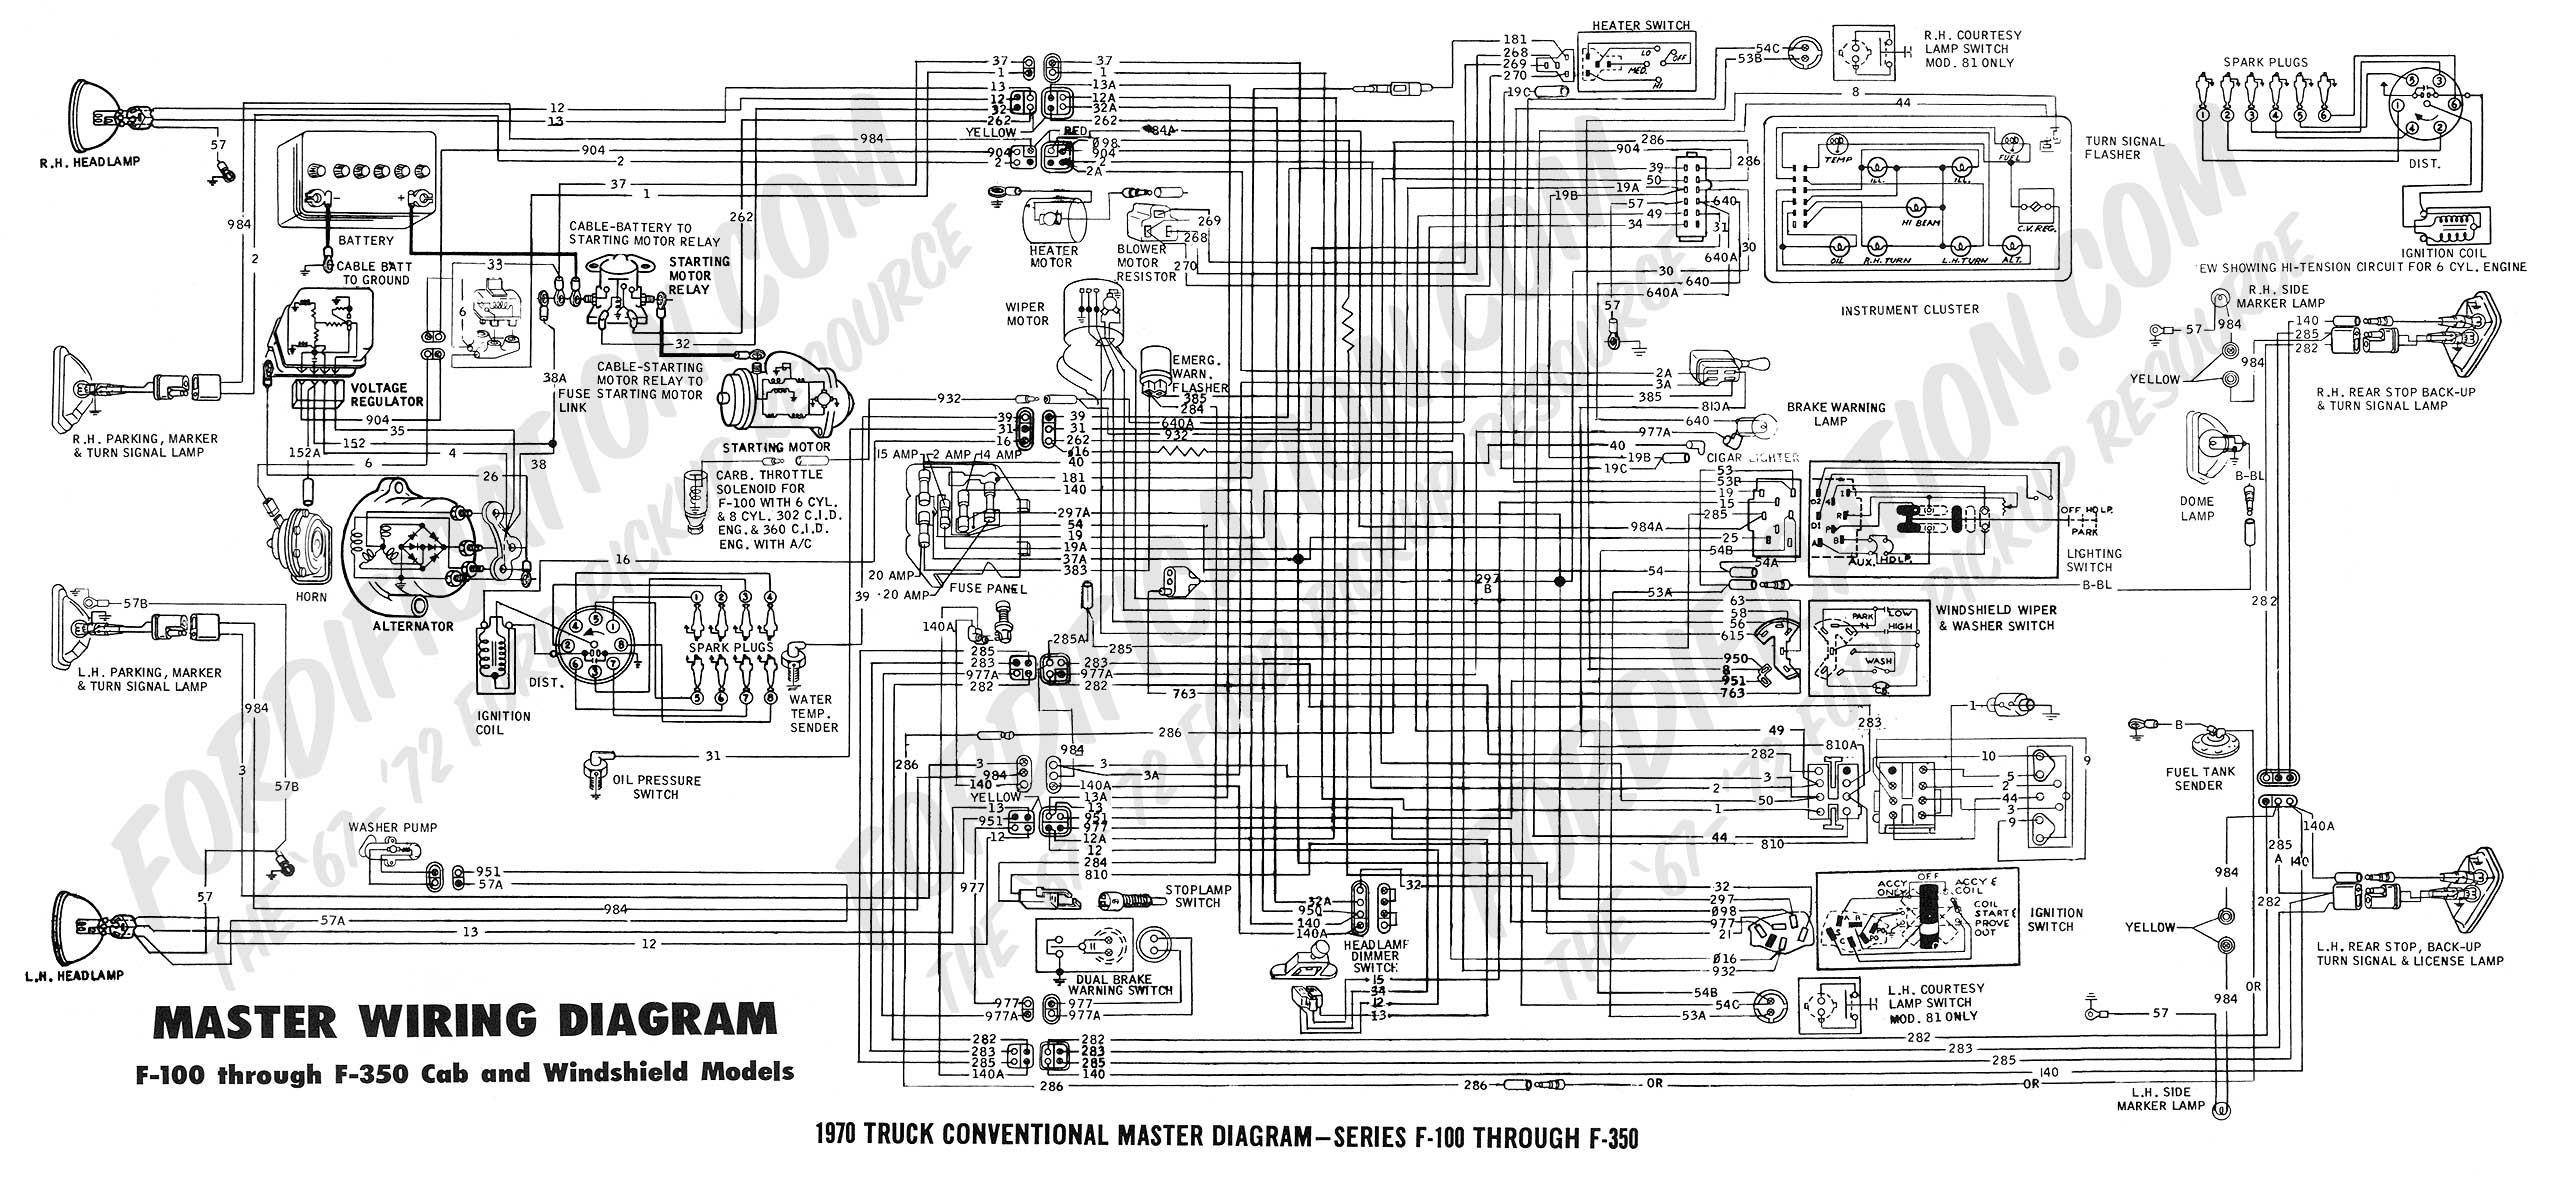 wiring diagram 70_master ford truck technical drawings and schematics section h wiring 2008 ford f250 wiring diagram at bayanpartner.co